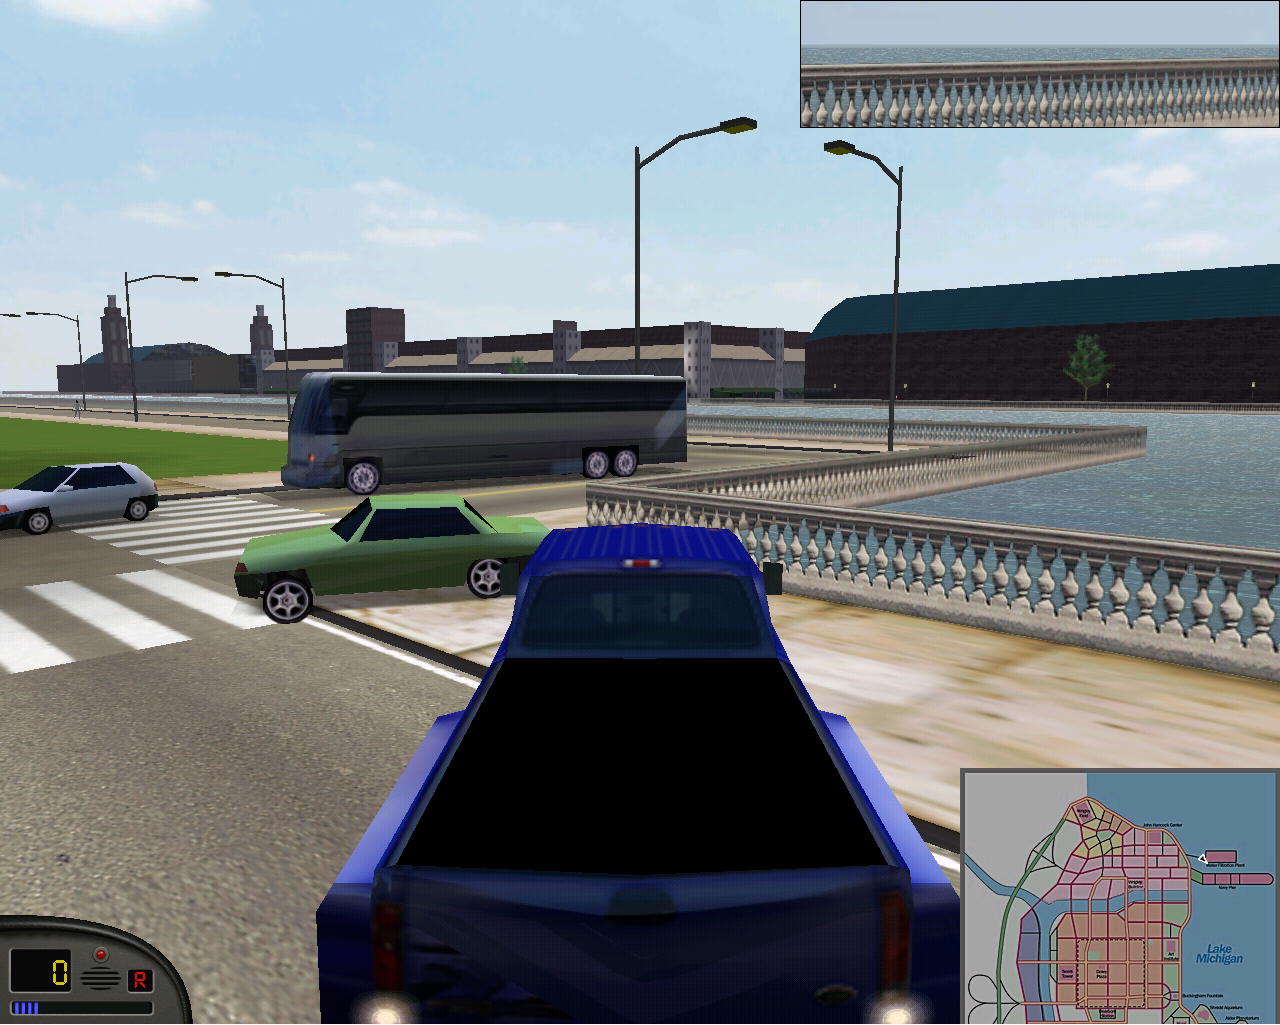 Traffic exists near the water purification plant in MM1.